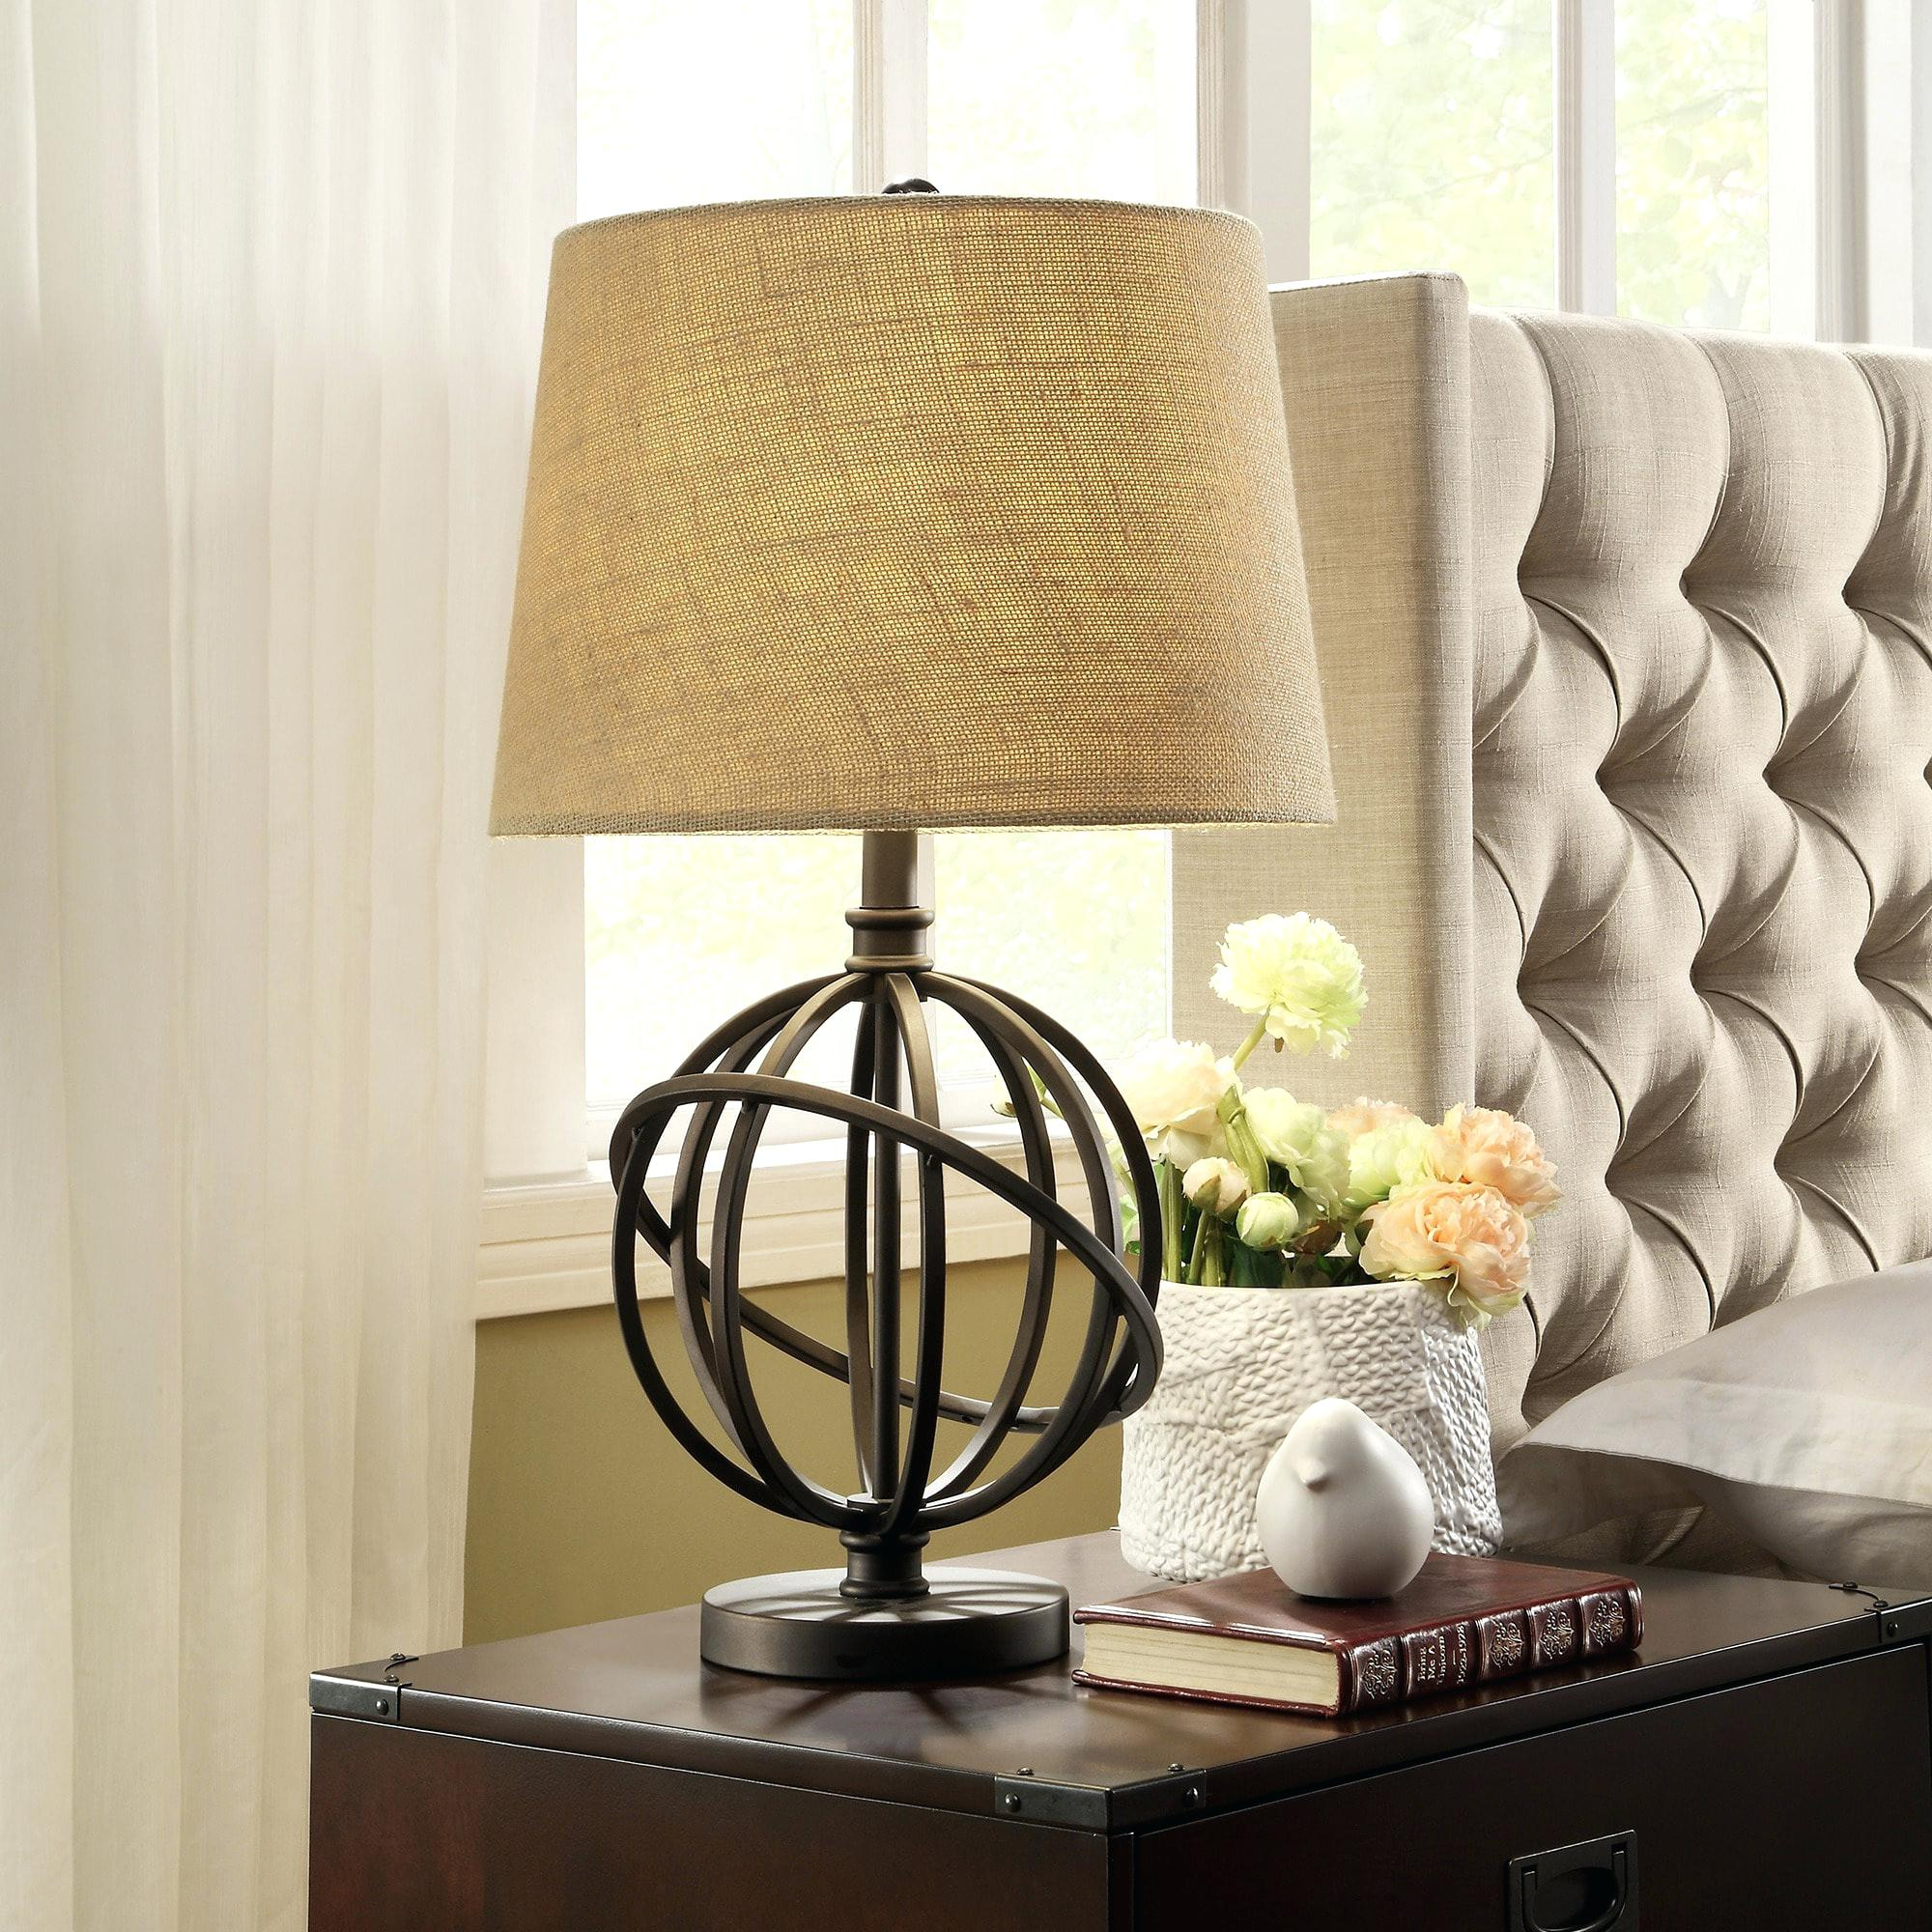 accent table lamps with lamp attached fitmitagnes info cooper antique bronze metal orbit globe light inspire artisan small wicker furniture edmonton cherry wood winsome ava